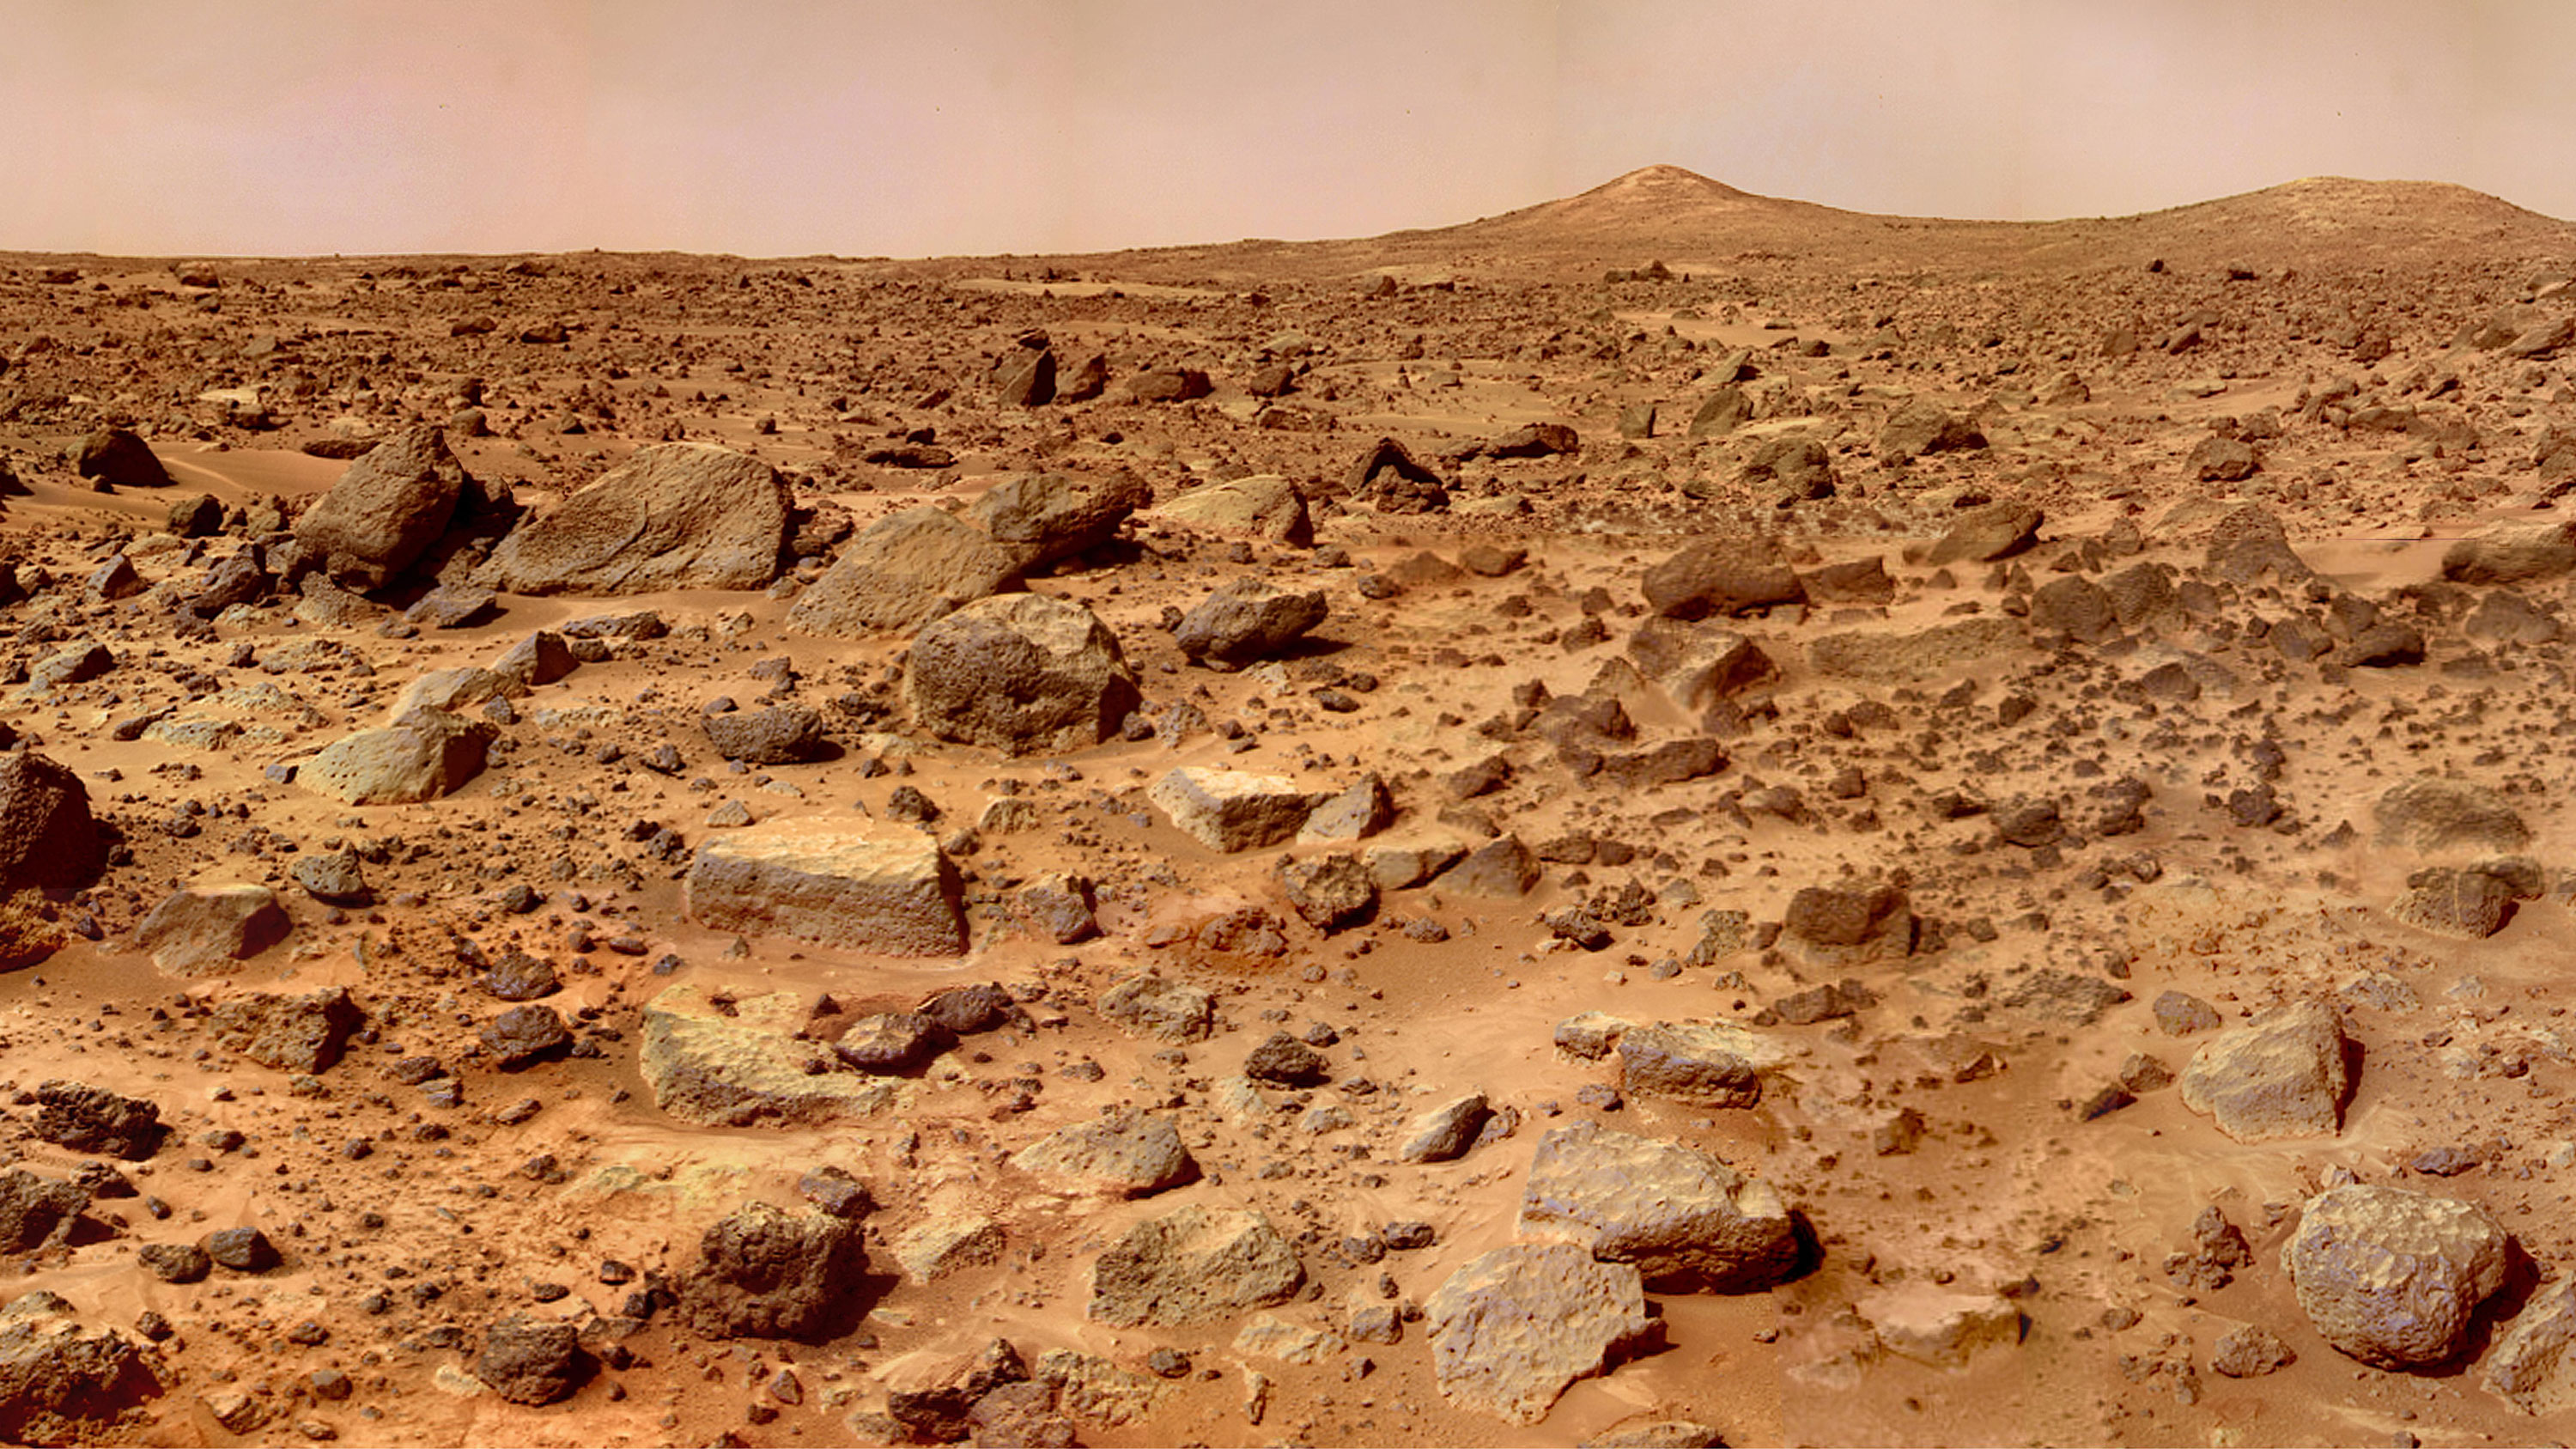 A photo of the mars surface